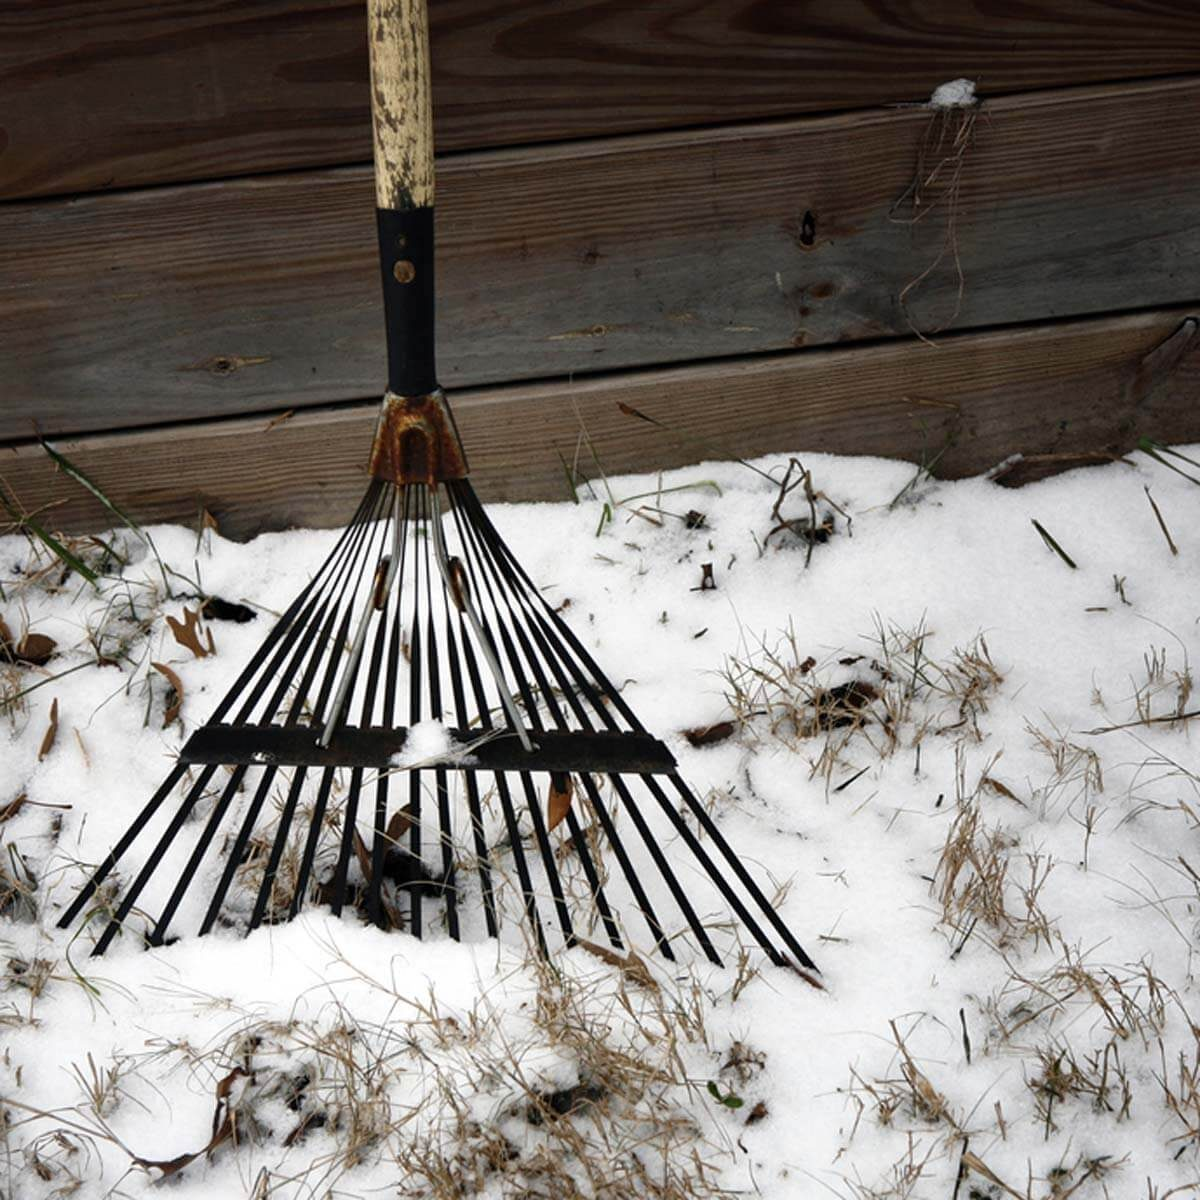 shutterstock_70463974 rake in winter snow